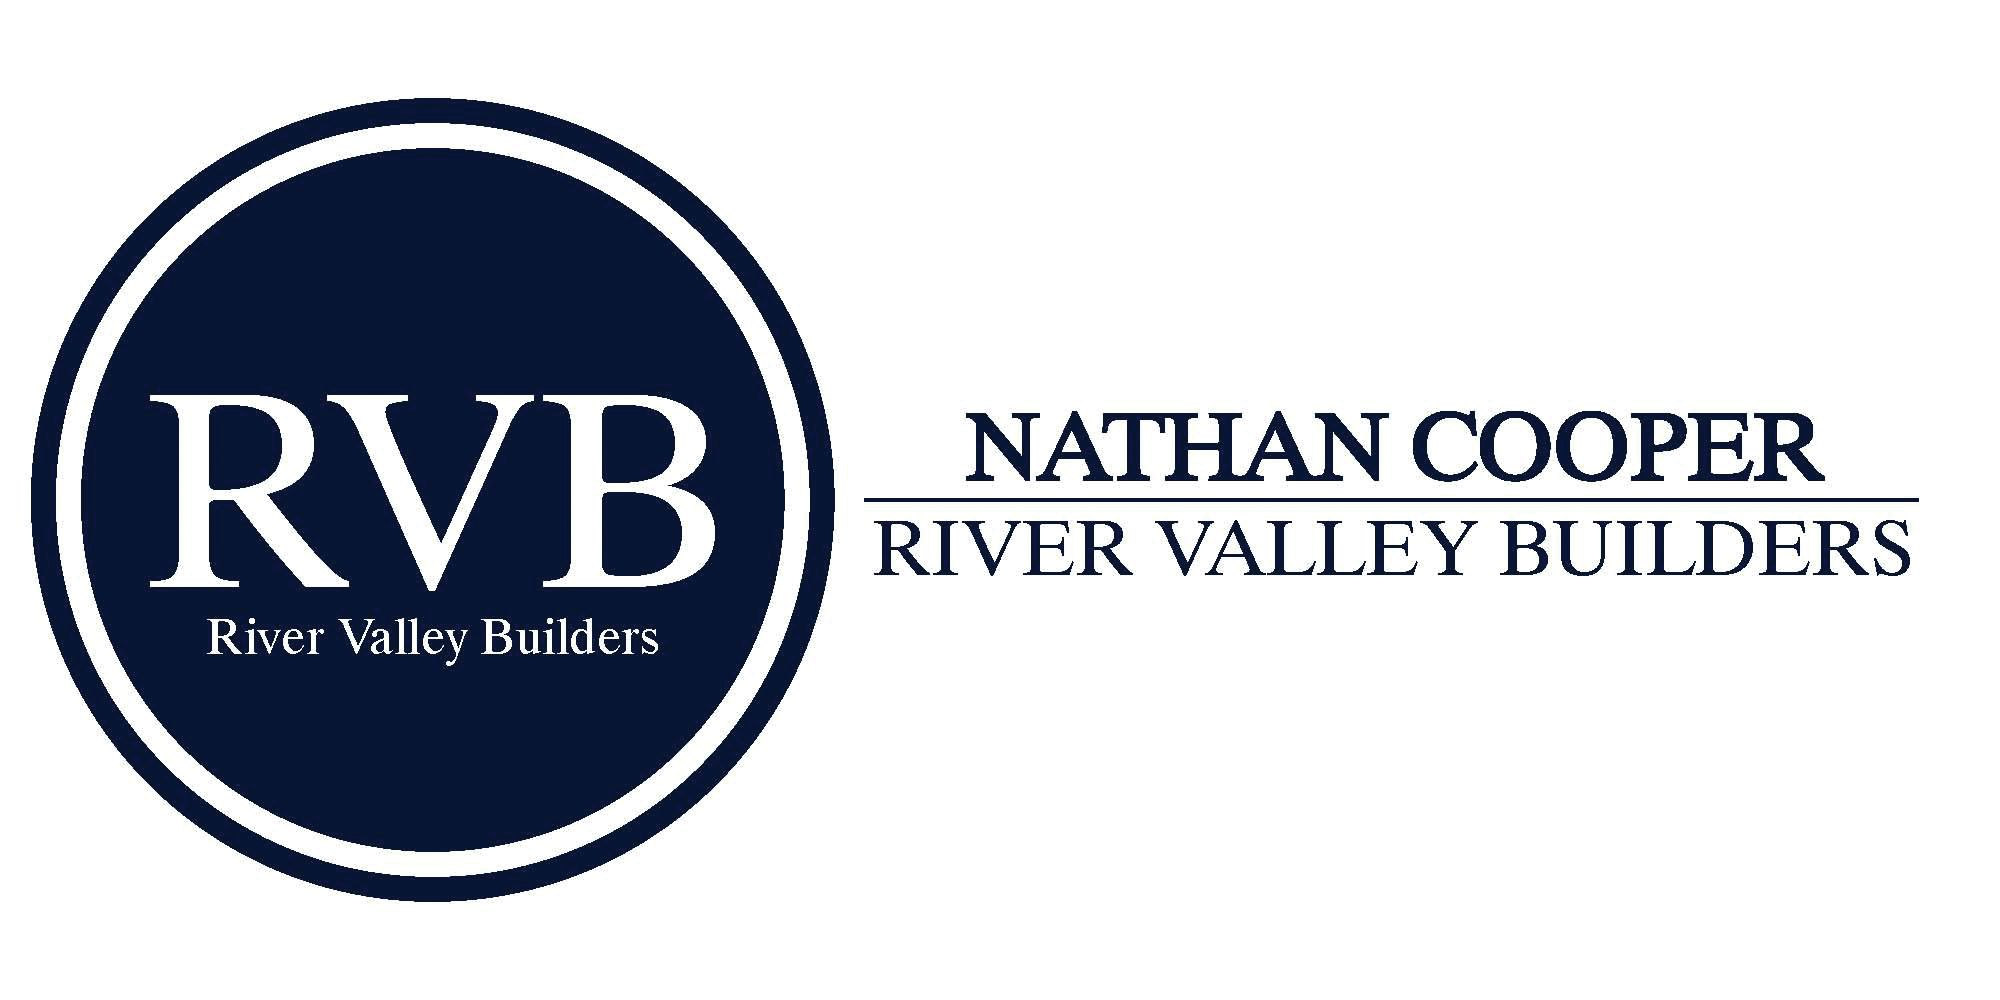 Nathan Cooper, River Valley Builders Logo